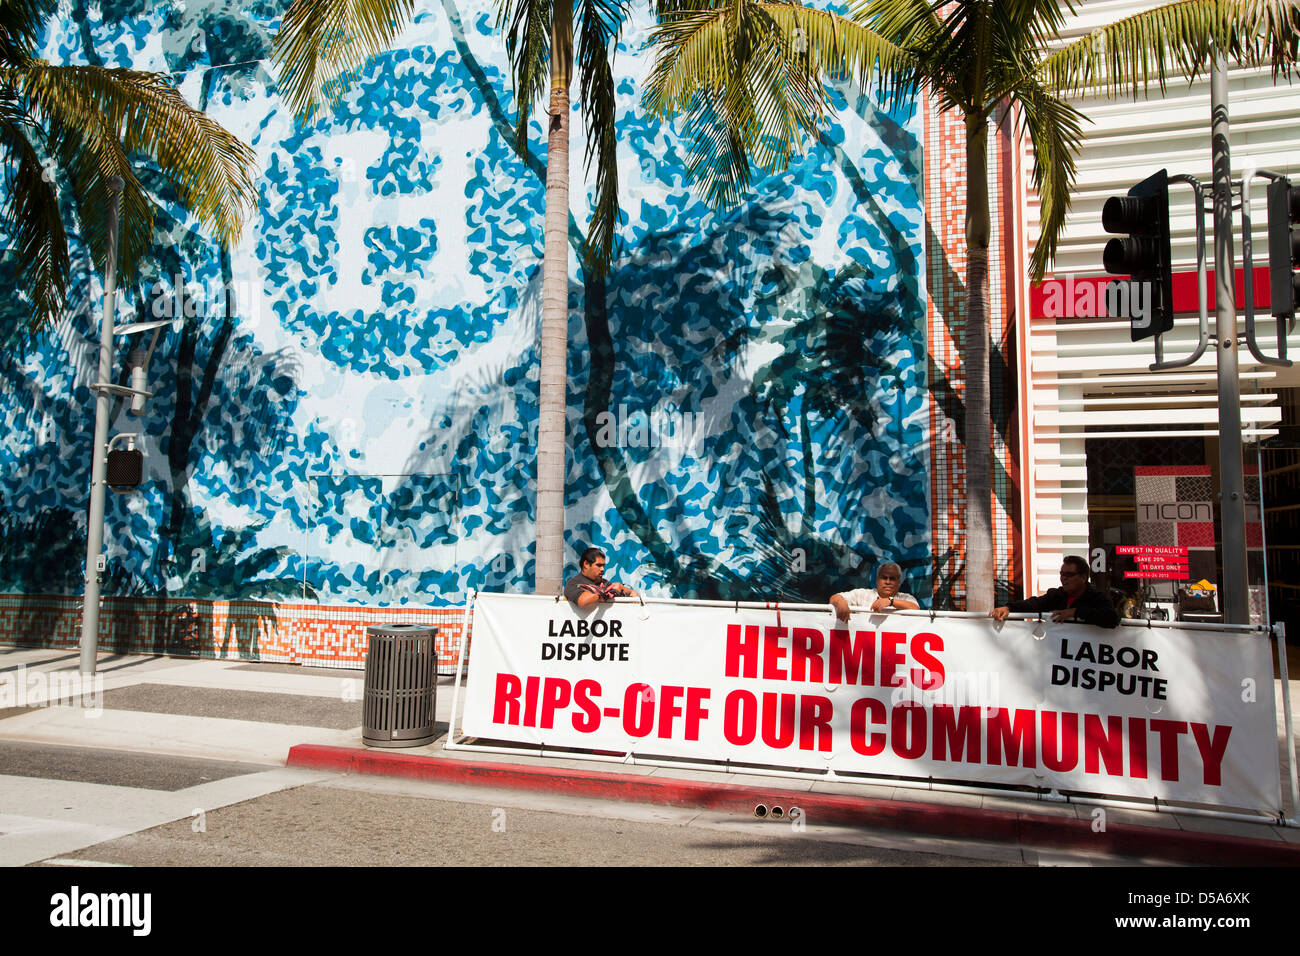 labor protest, Beverly Hills, California, United States - Stock Image